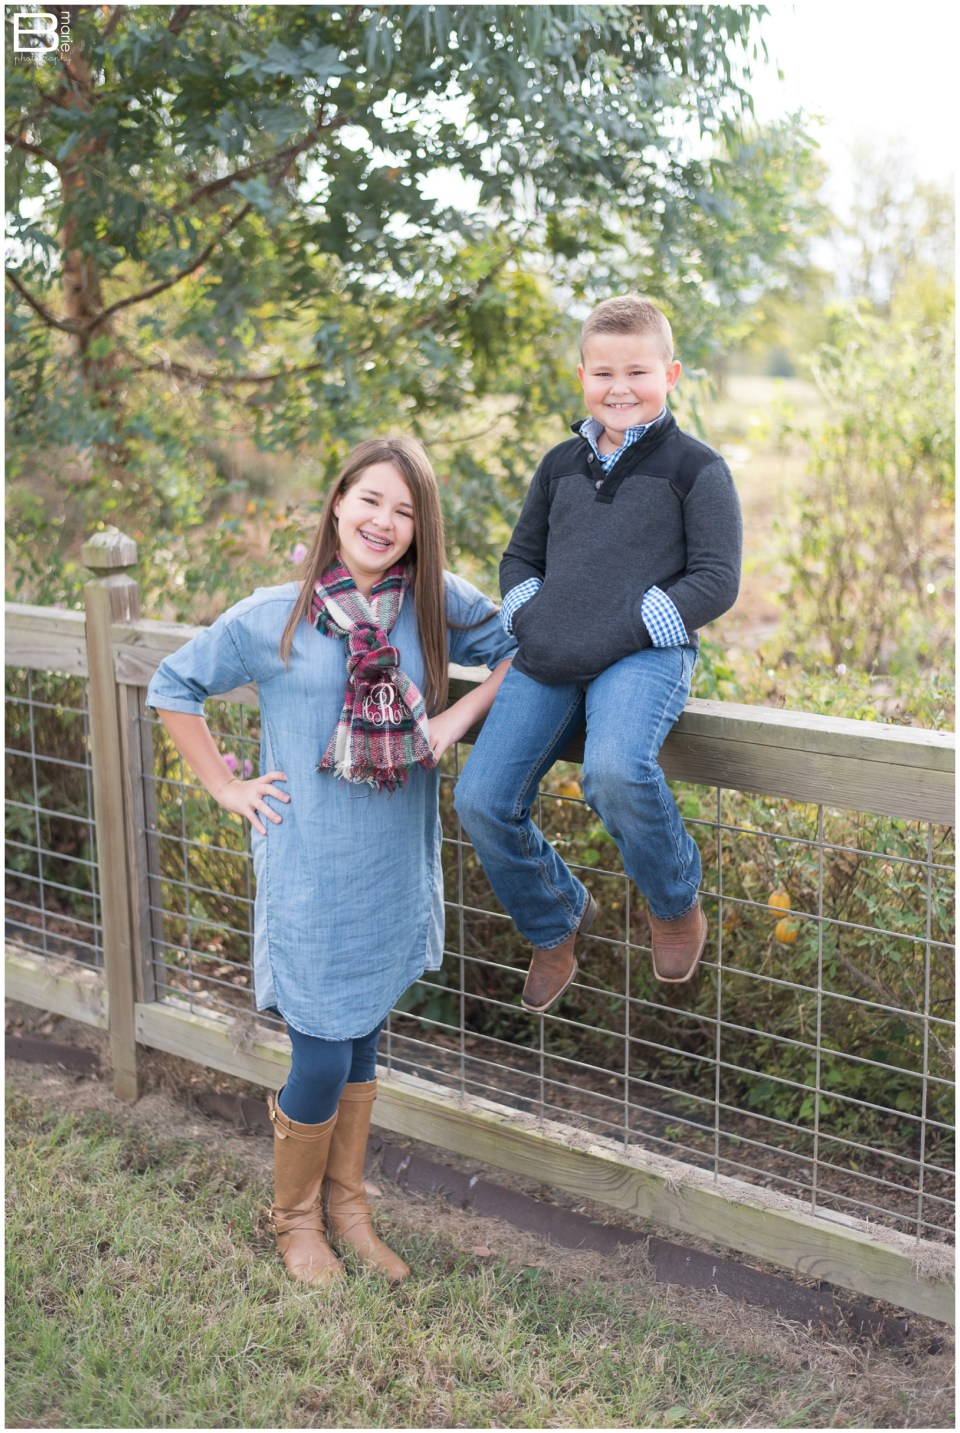 Kingwood family photographer image of siblings in open field and botanical area